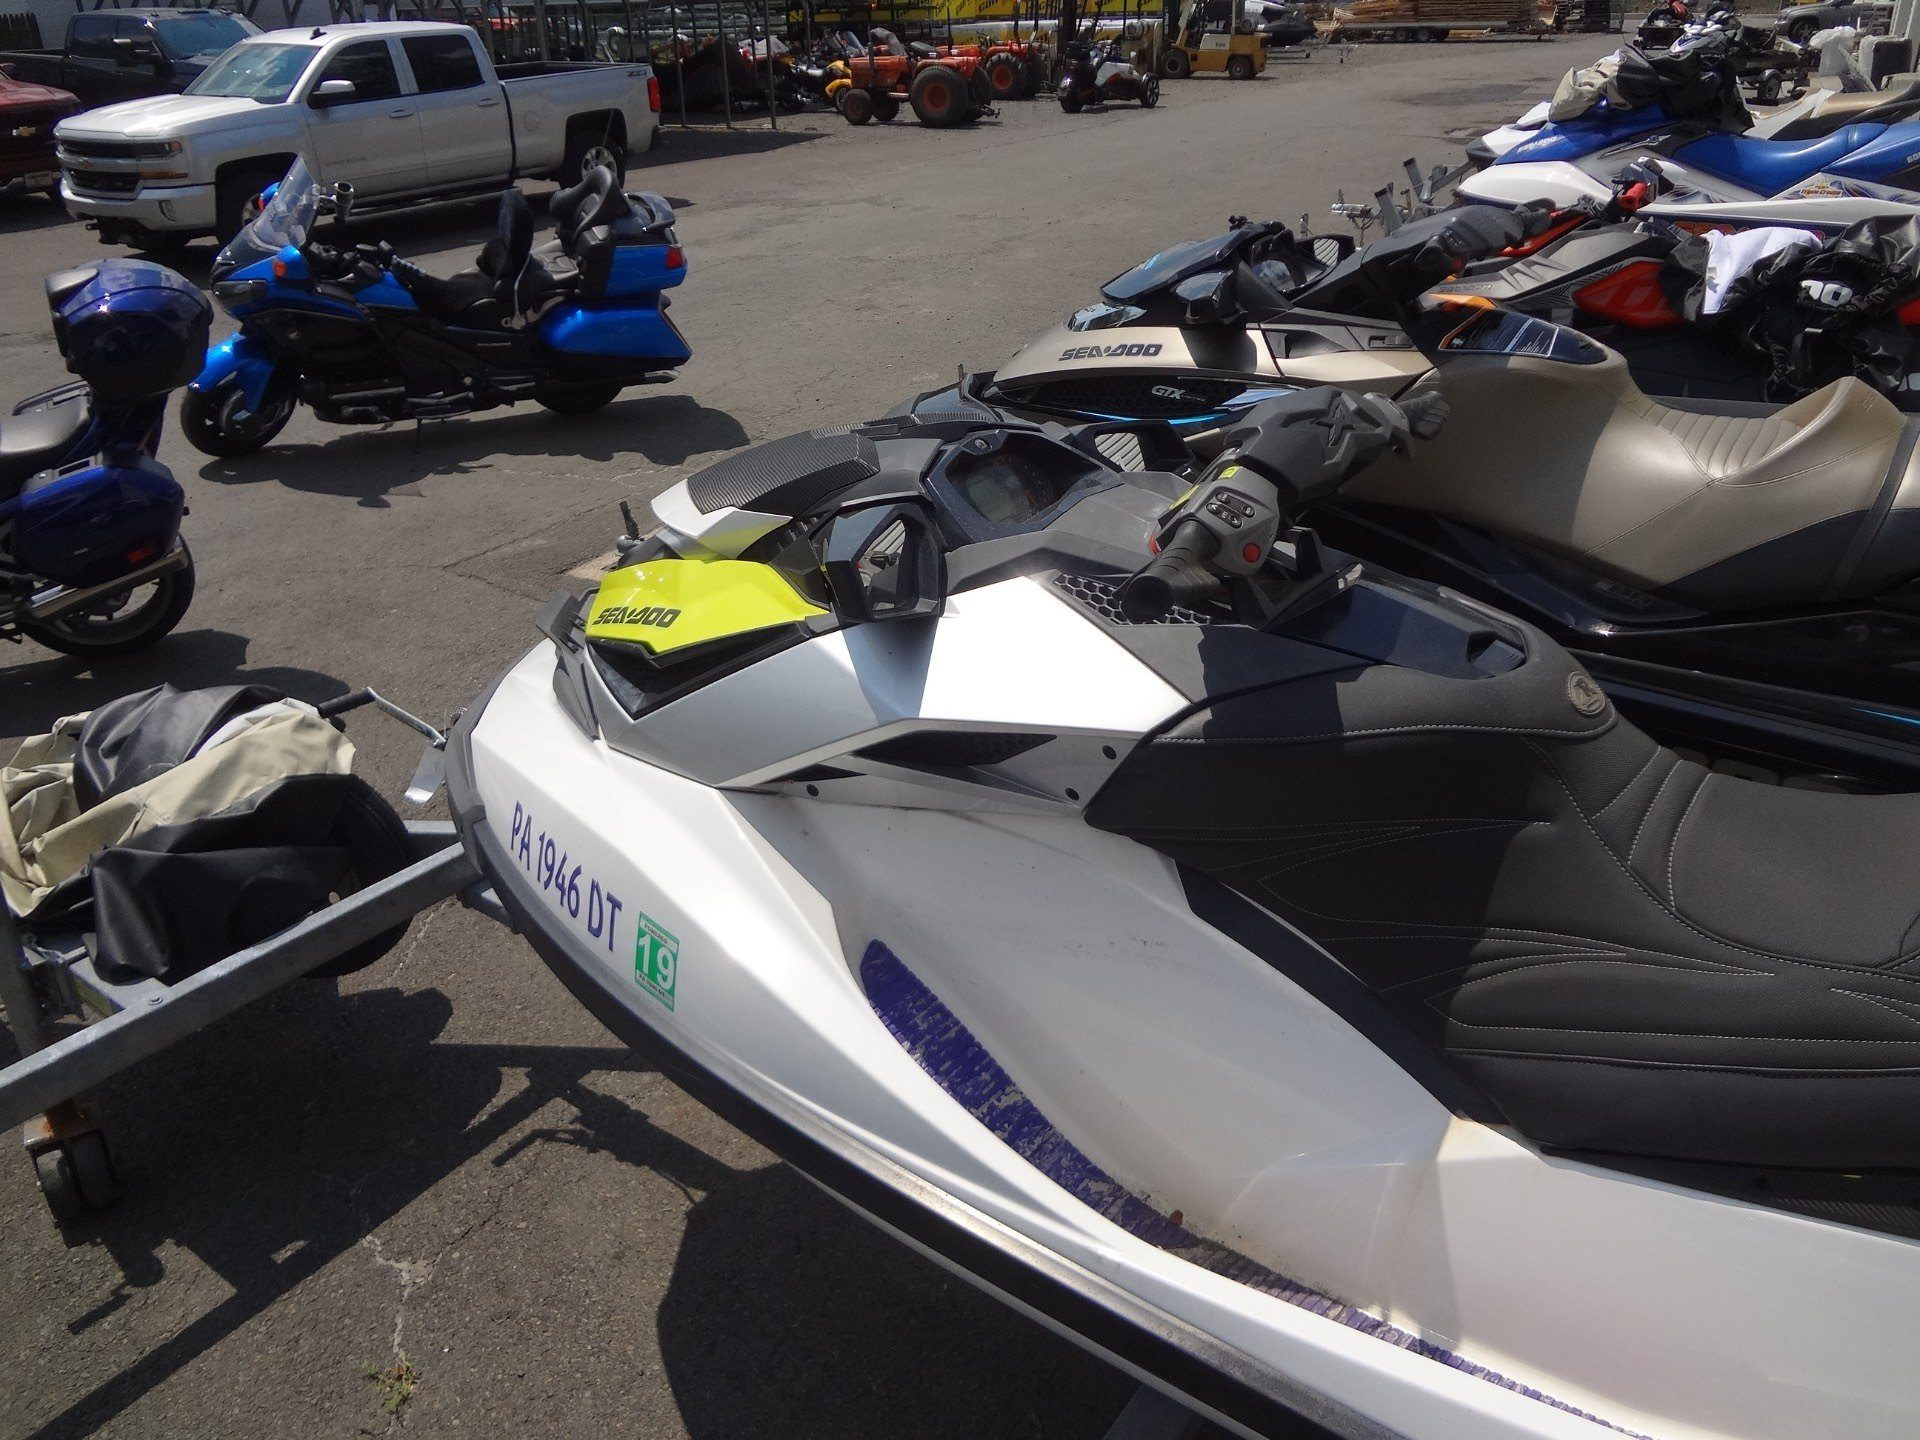 2017 Sea-Doo RXP-X 300 in New Britain, Pennsylvania - Photo 3